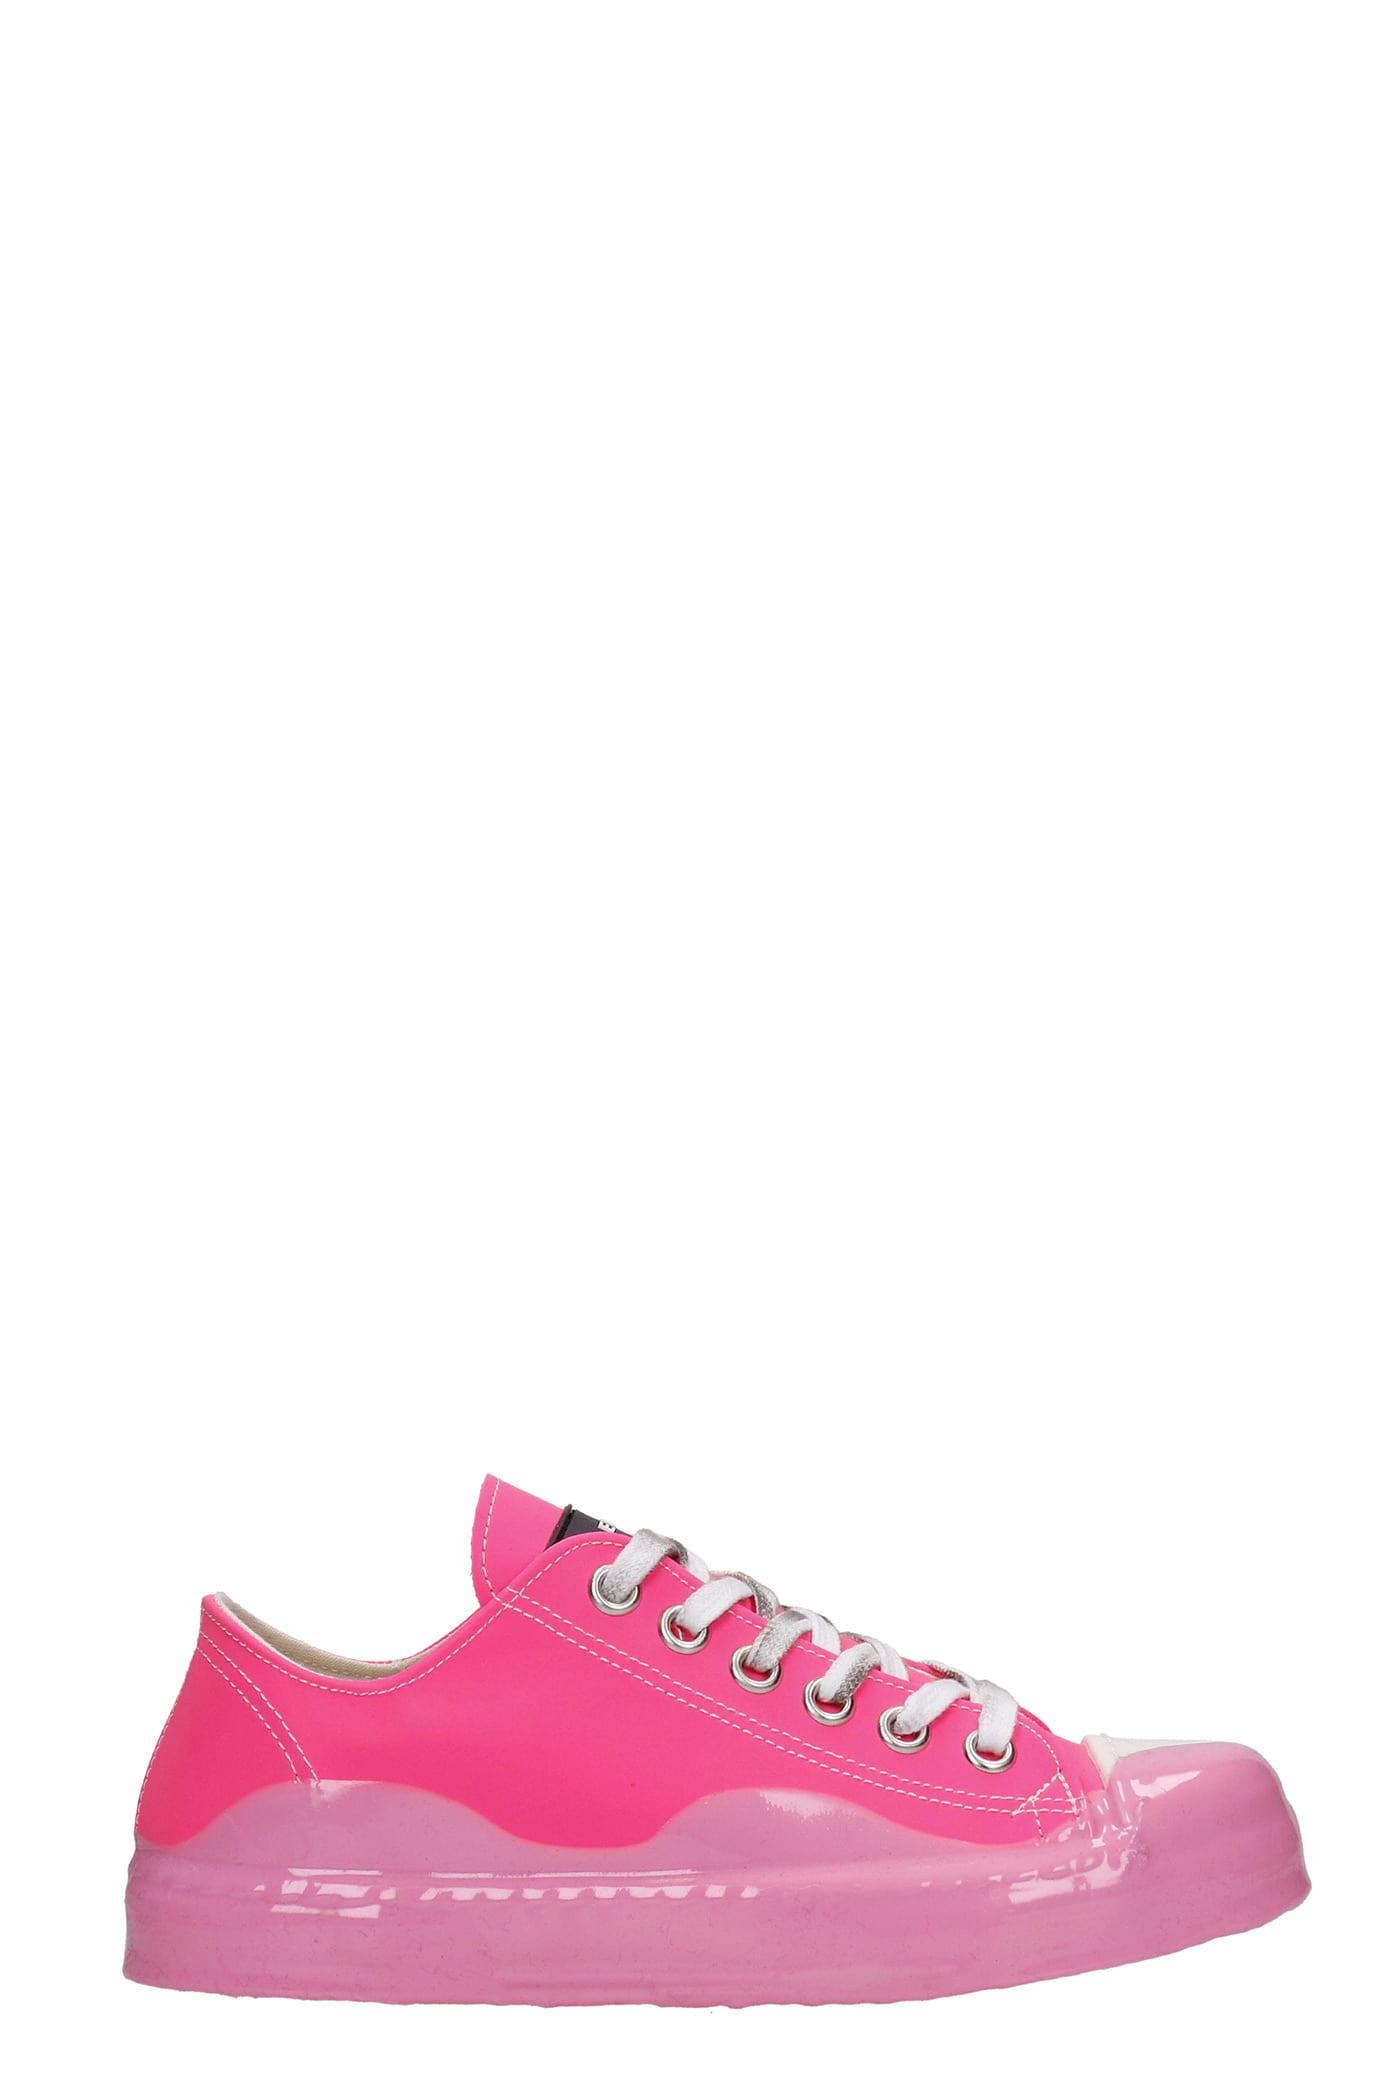 J.m. Low Sneakers In Fuxia Synthetic Fibers